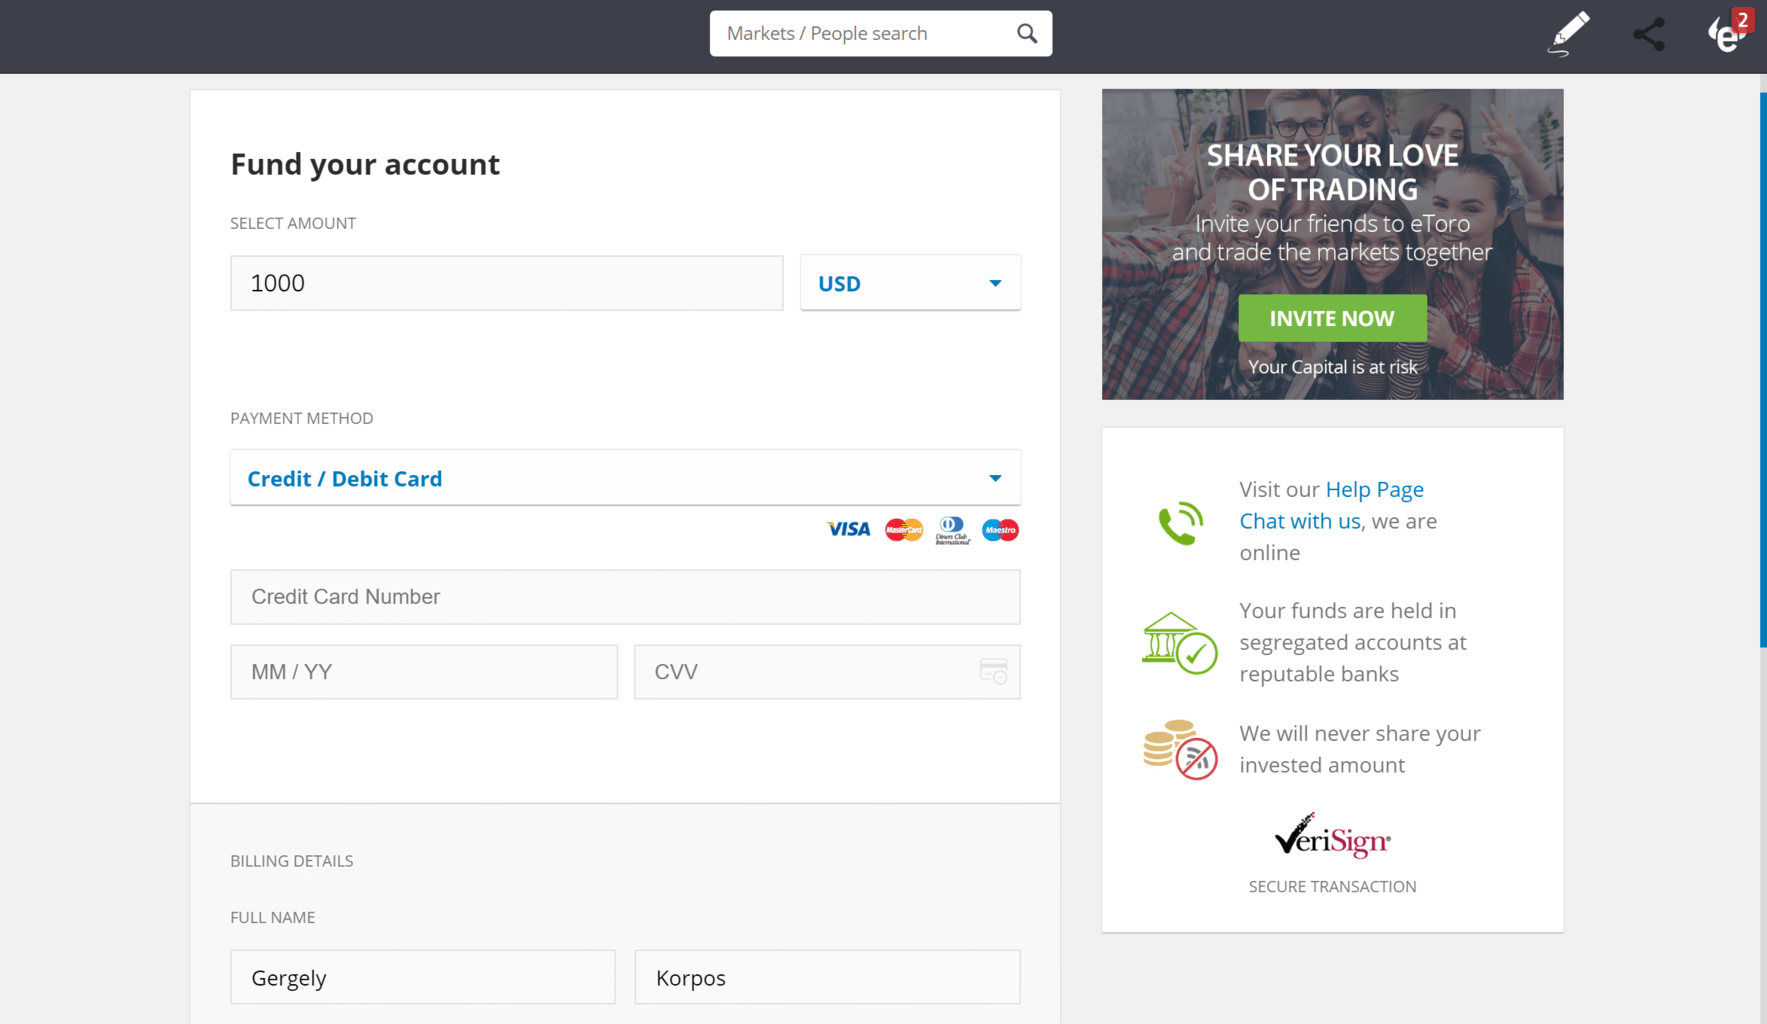 Deposit funds at eToro